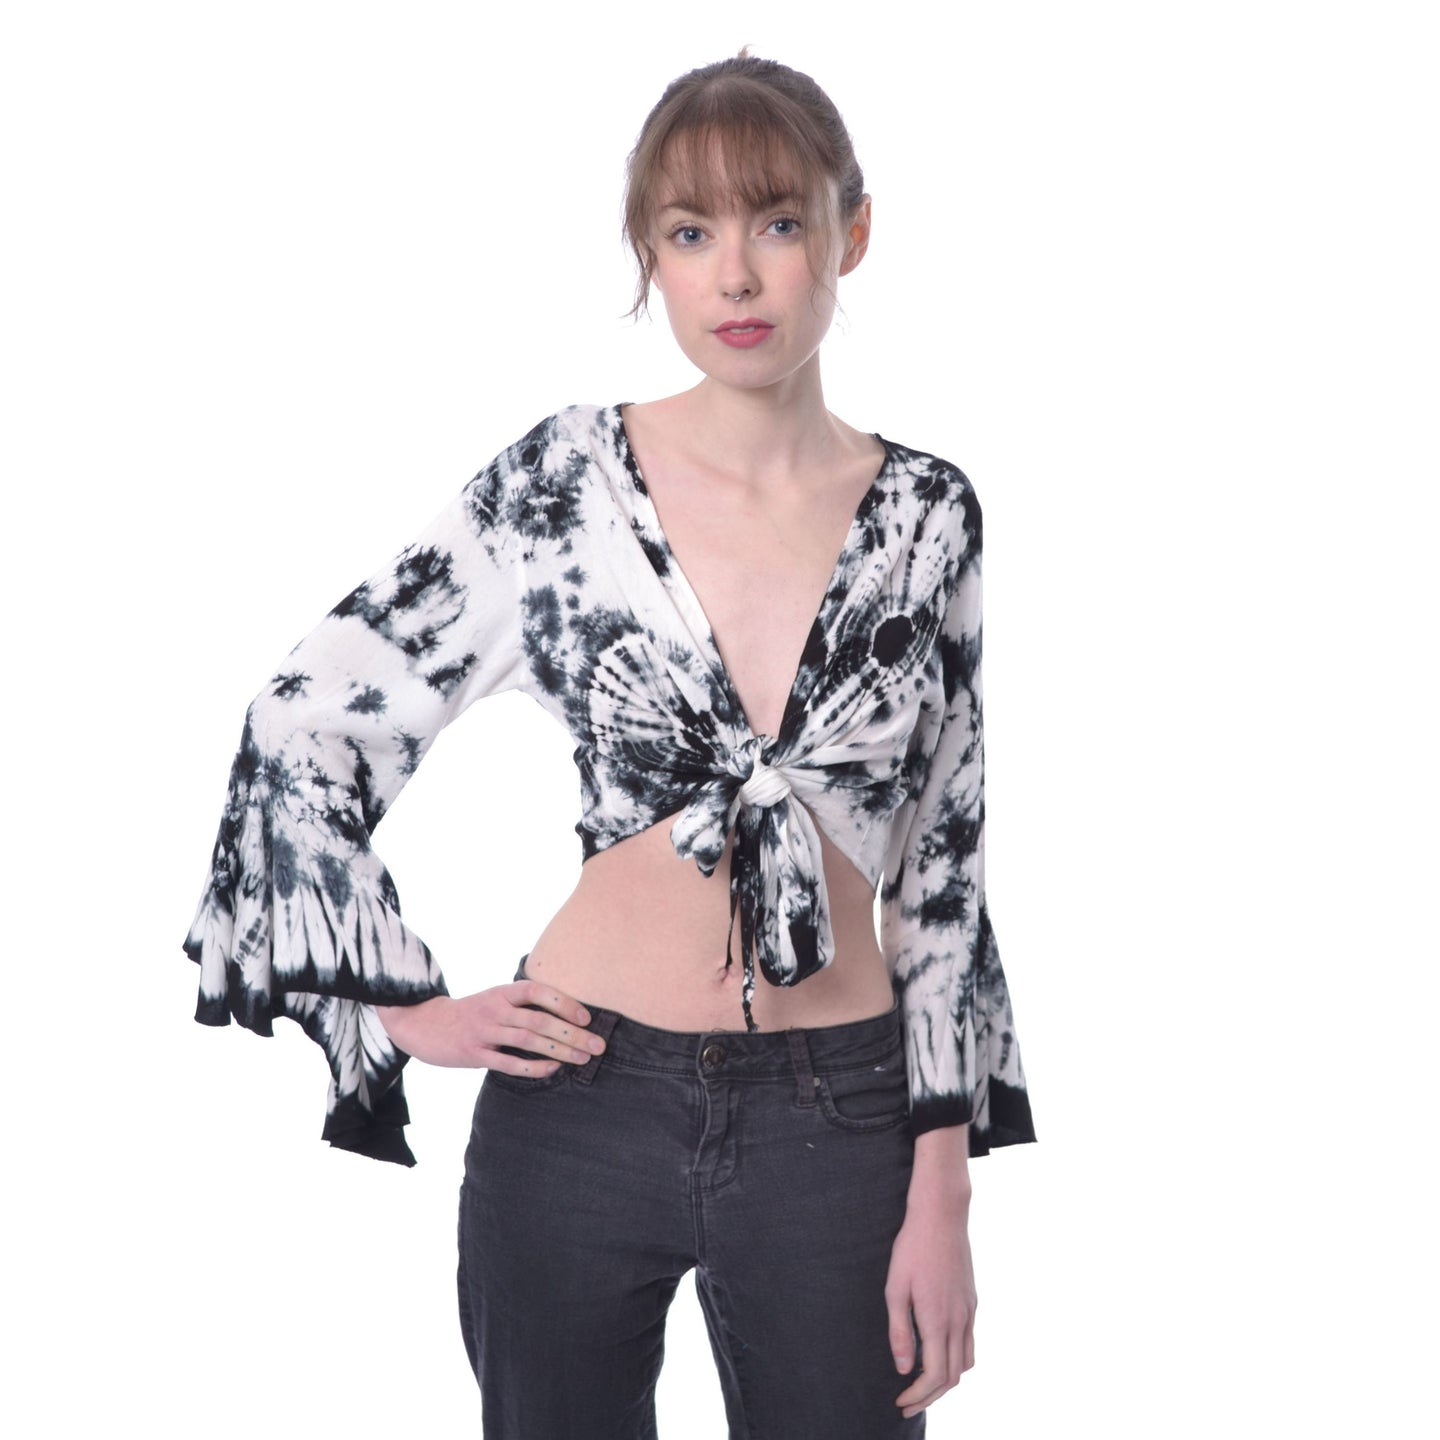 Innocent Echo Tie Top - White/Black